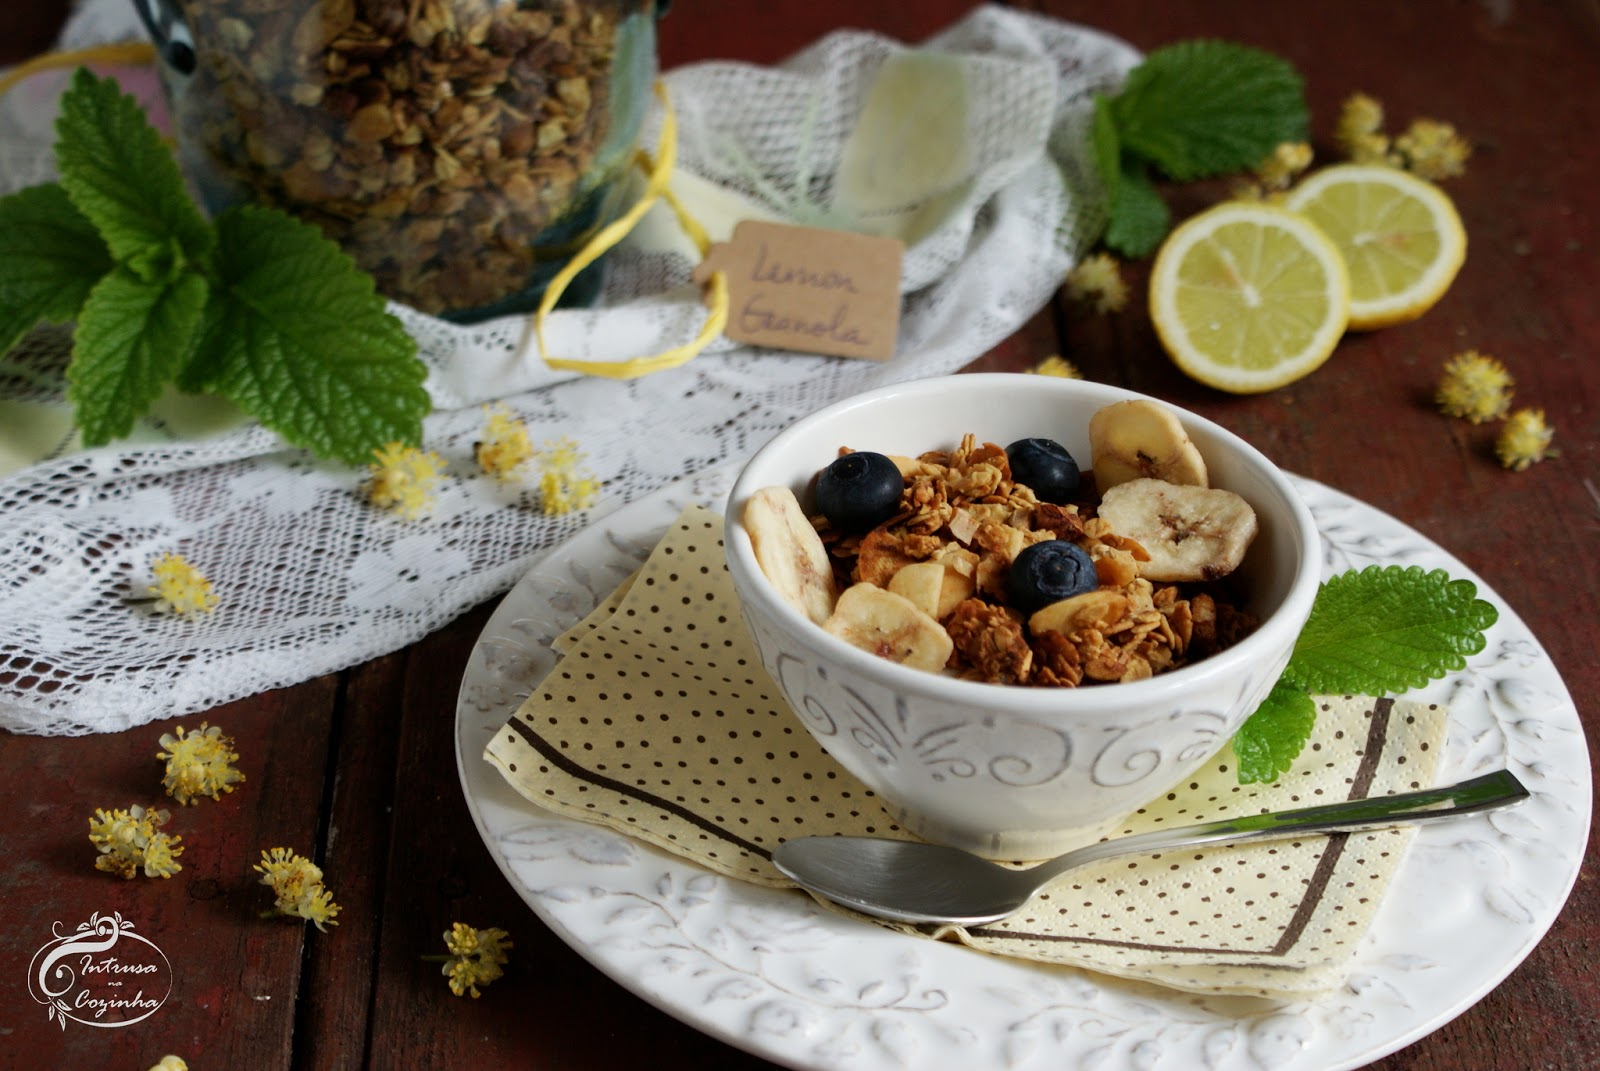 Granola de Limão & Frutos Secos {Nutty Lemon Granola}